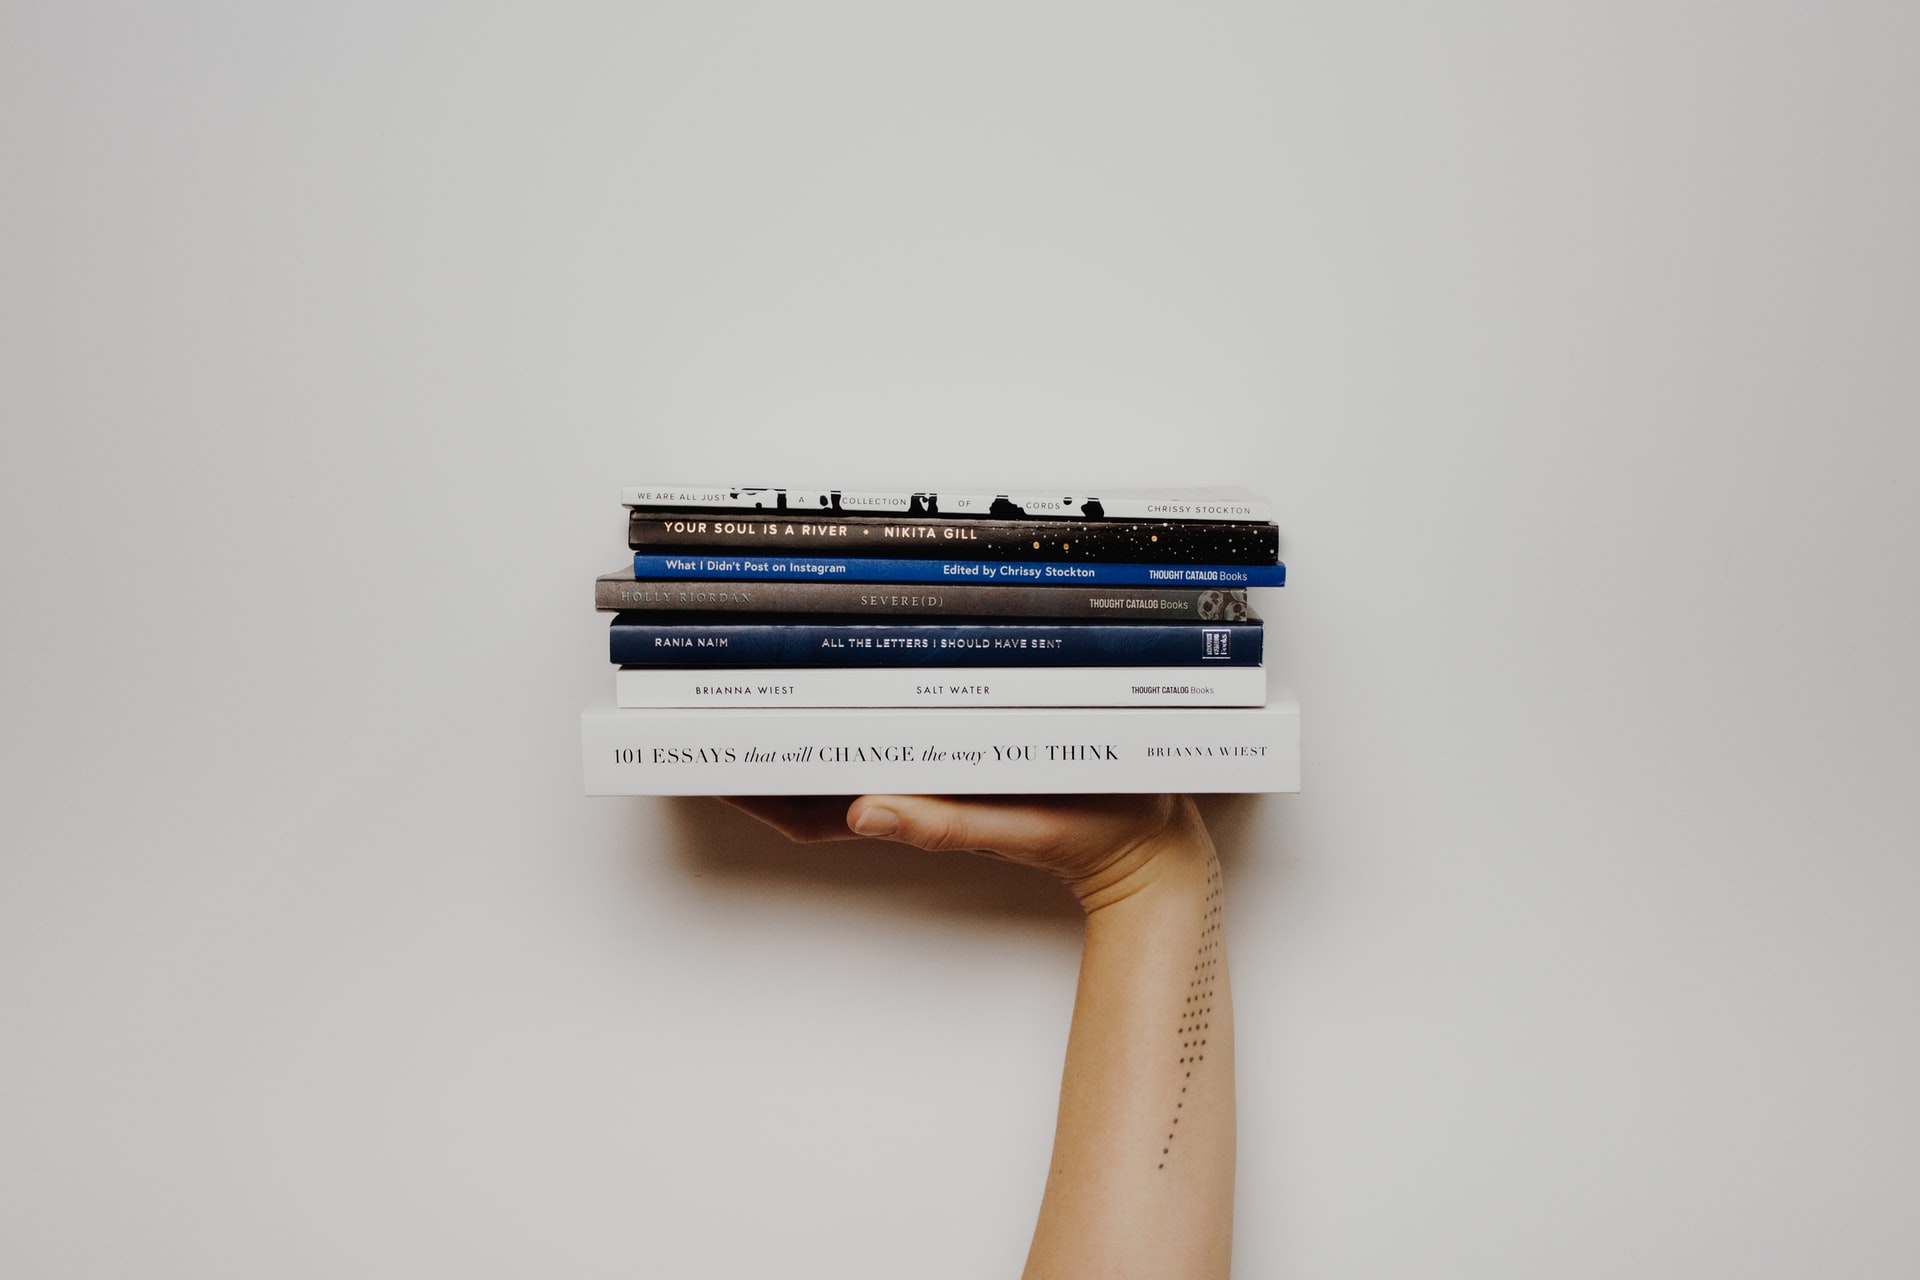 A person's hand holding up a pile of books with a white background